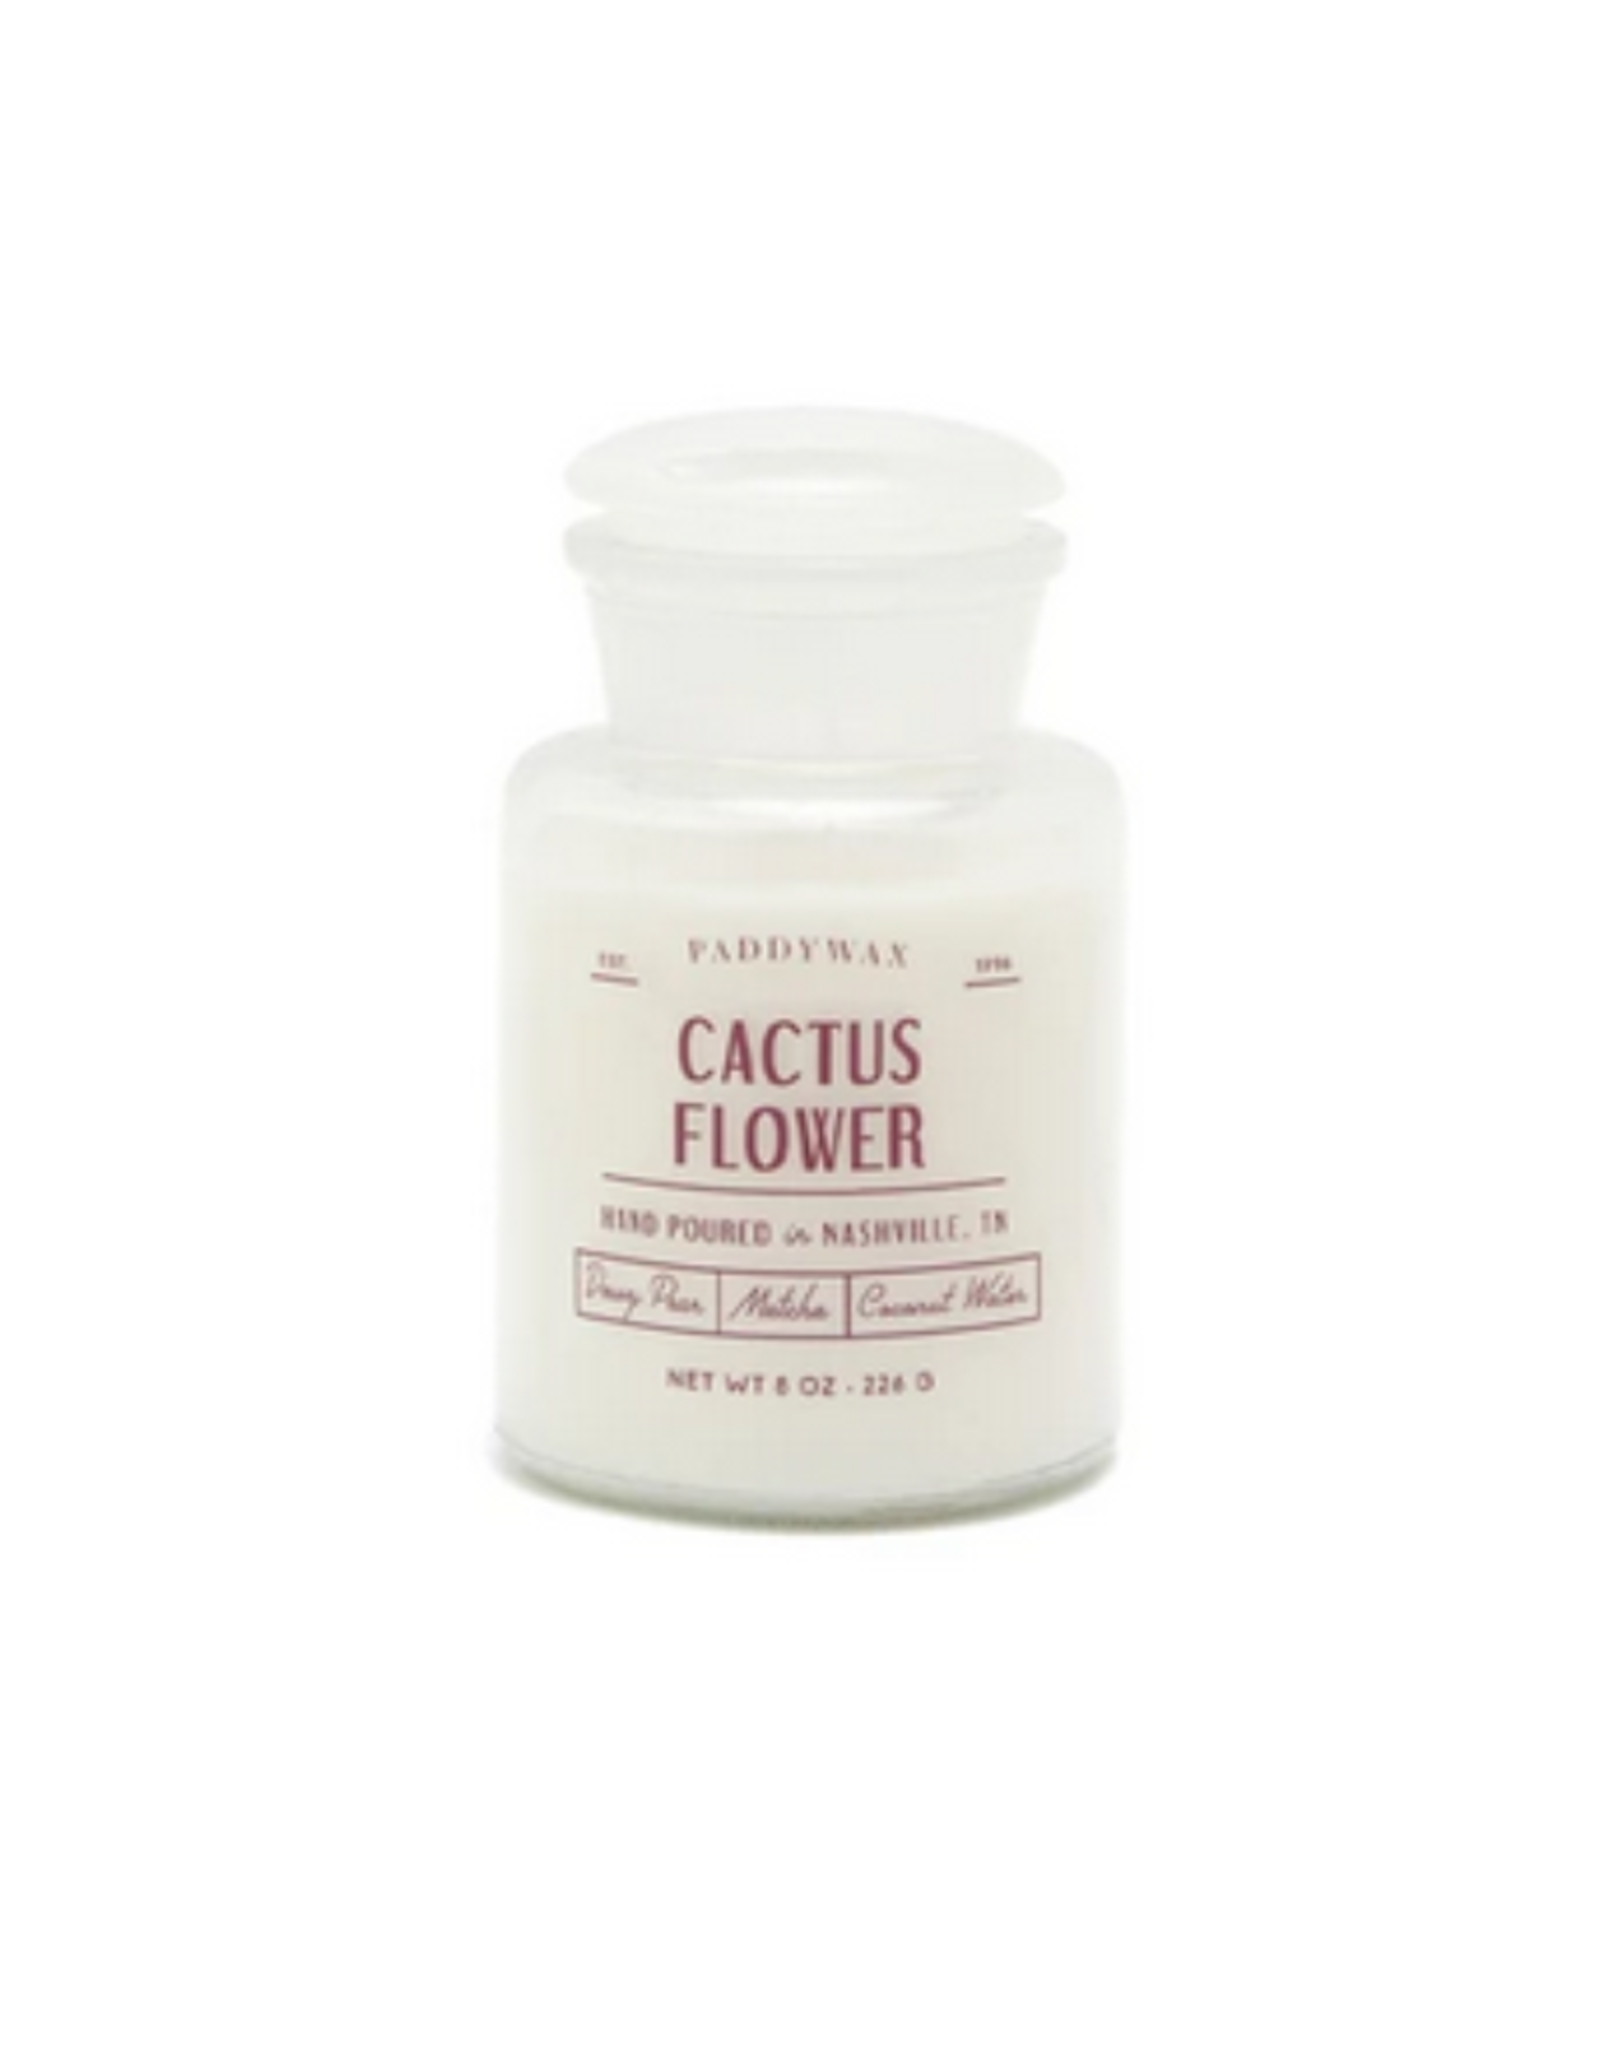 Farmhouse Cactus Flower Candle